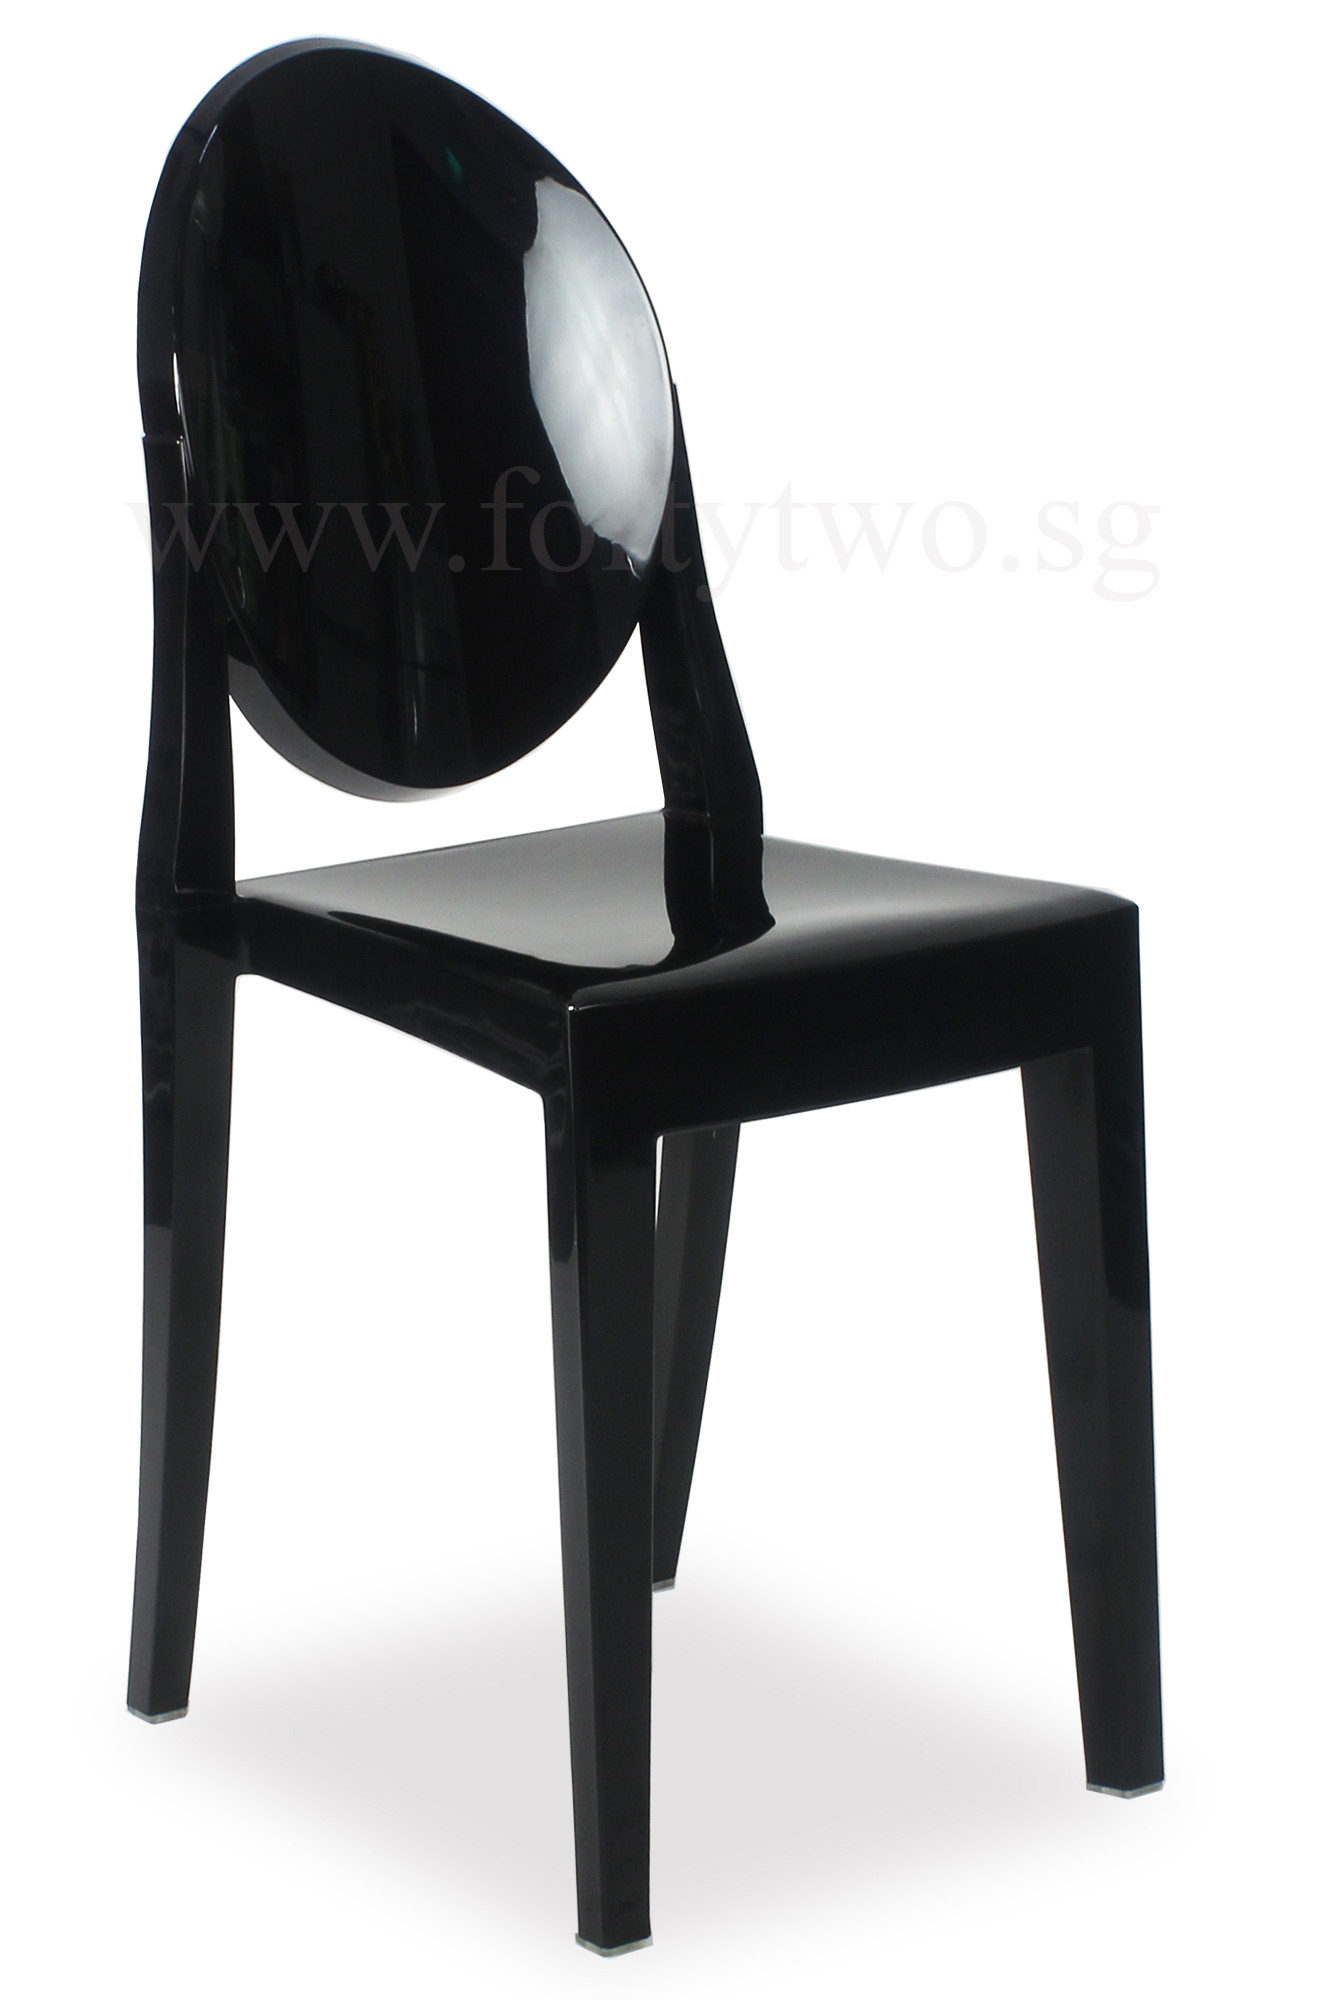 Merveilleux Designer Replica Louis Ghost Chair Black. Display Gallery Item 1 ...